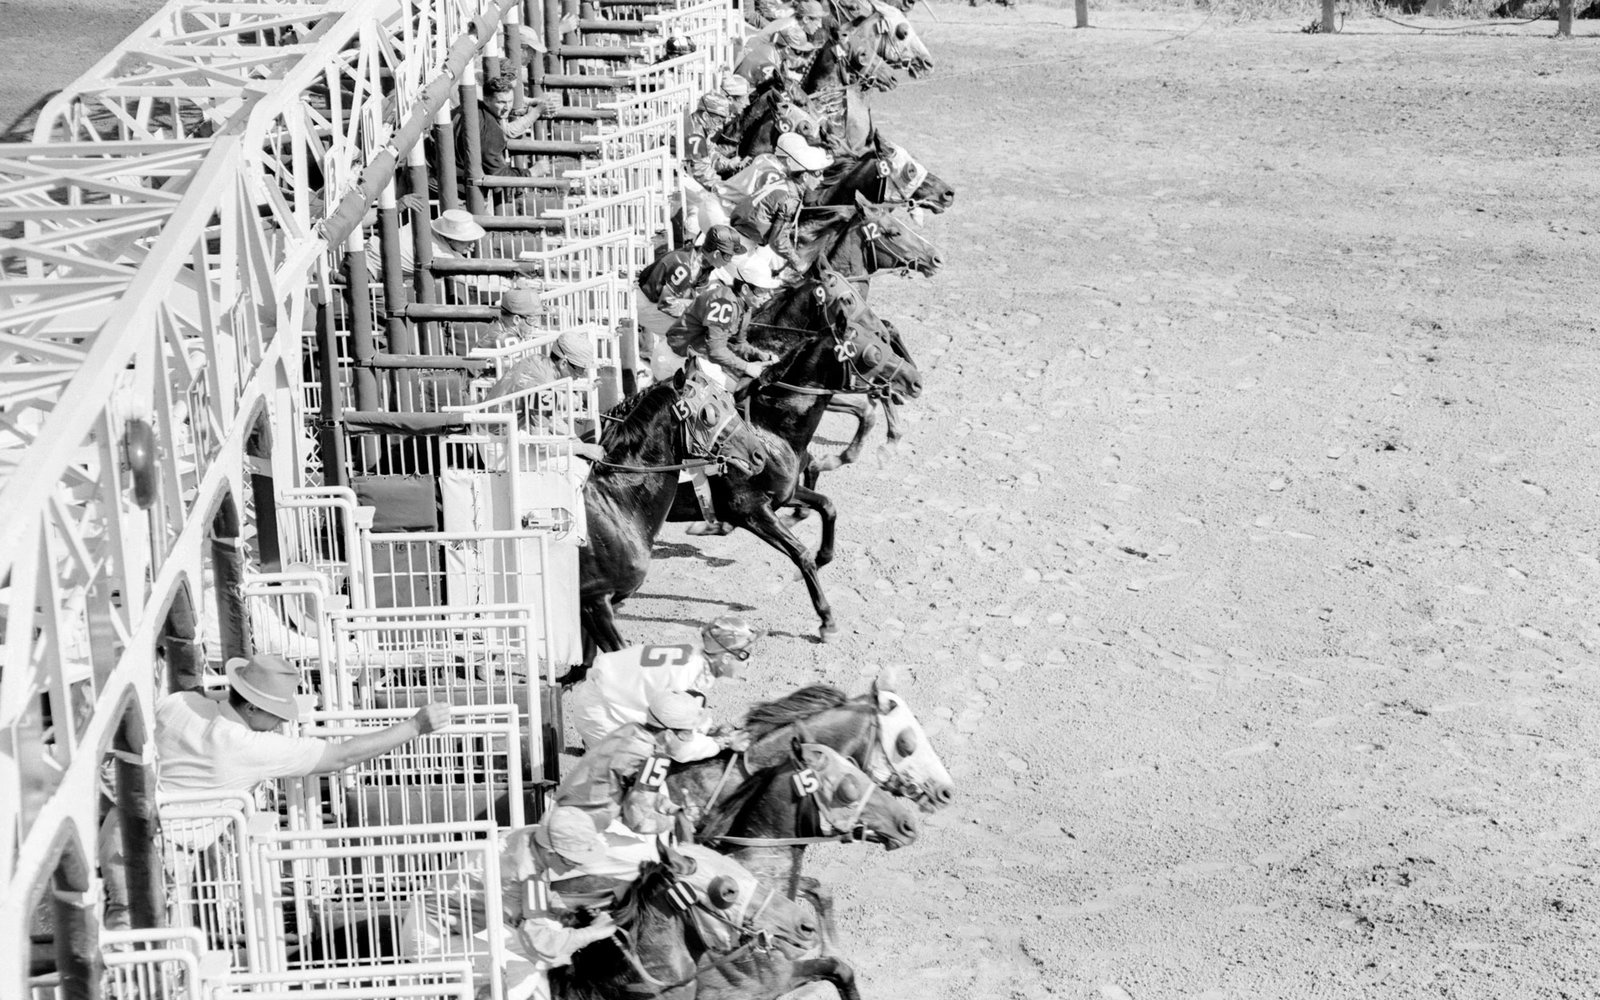 Starting Gate of the Kentucky Derby, 1956